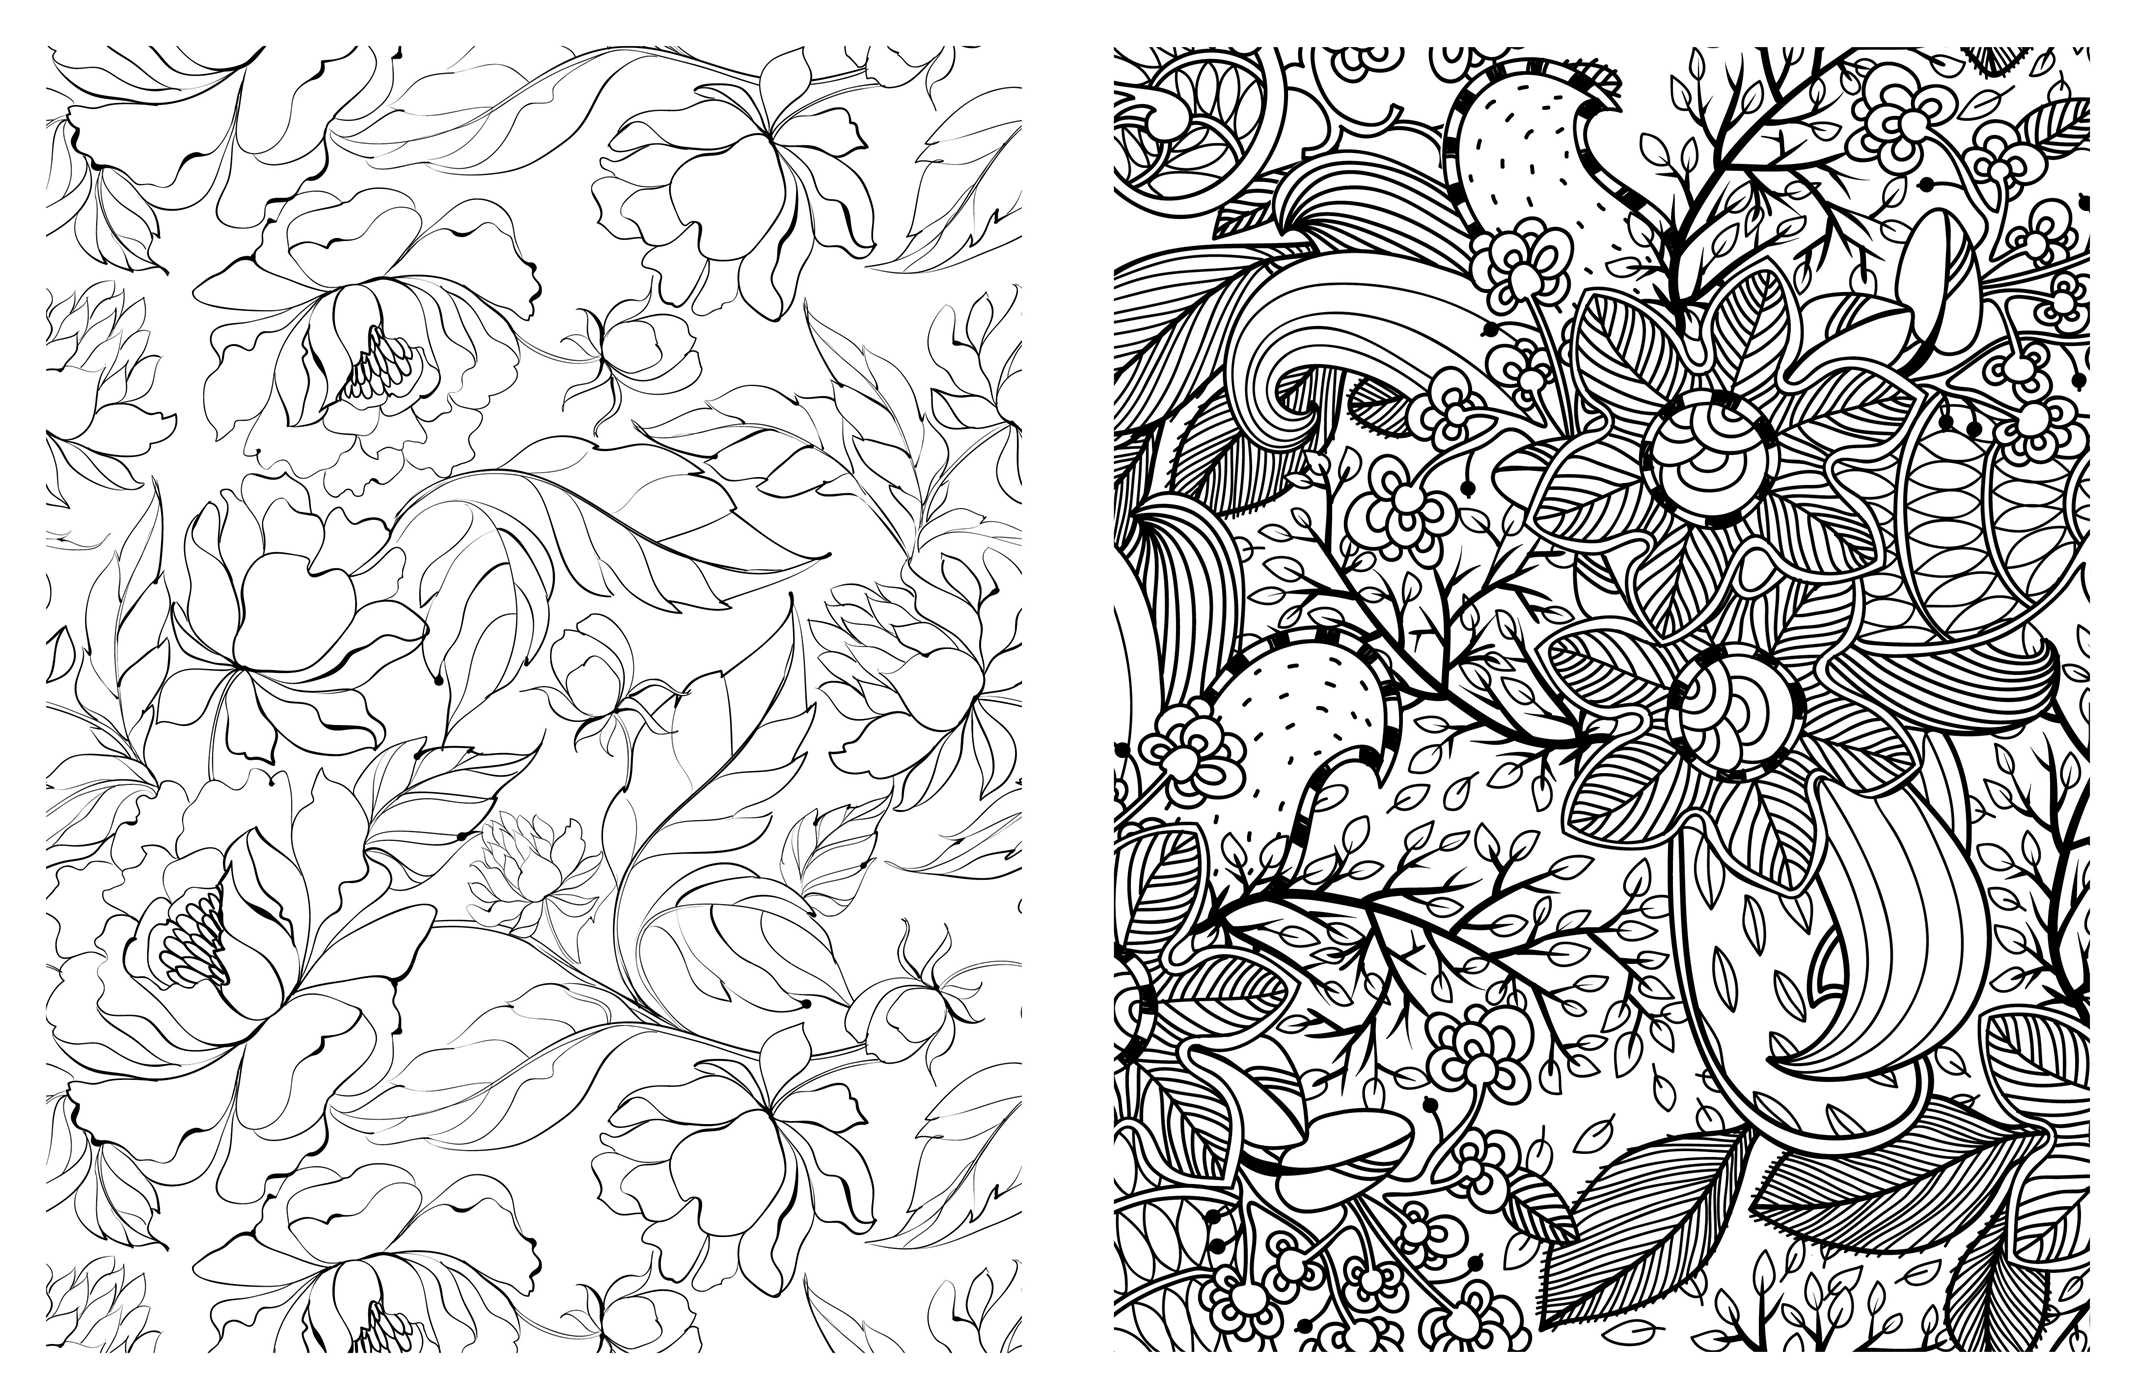 coloring pages for adults in recovery recovery coloring pages at getdrawings free download adults pages for recovery in coloring